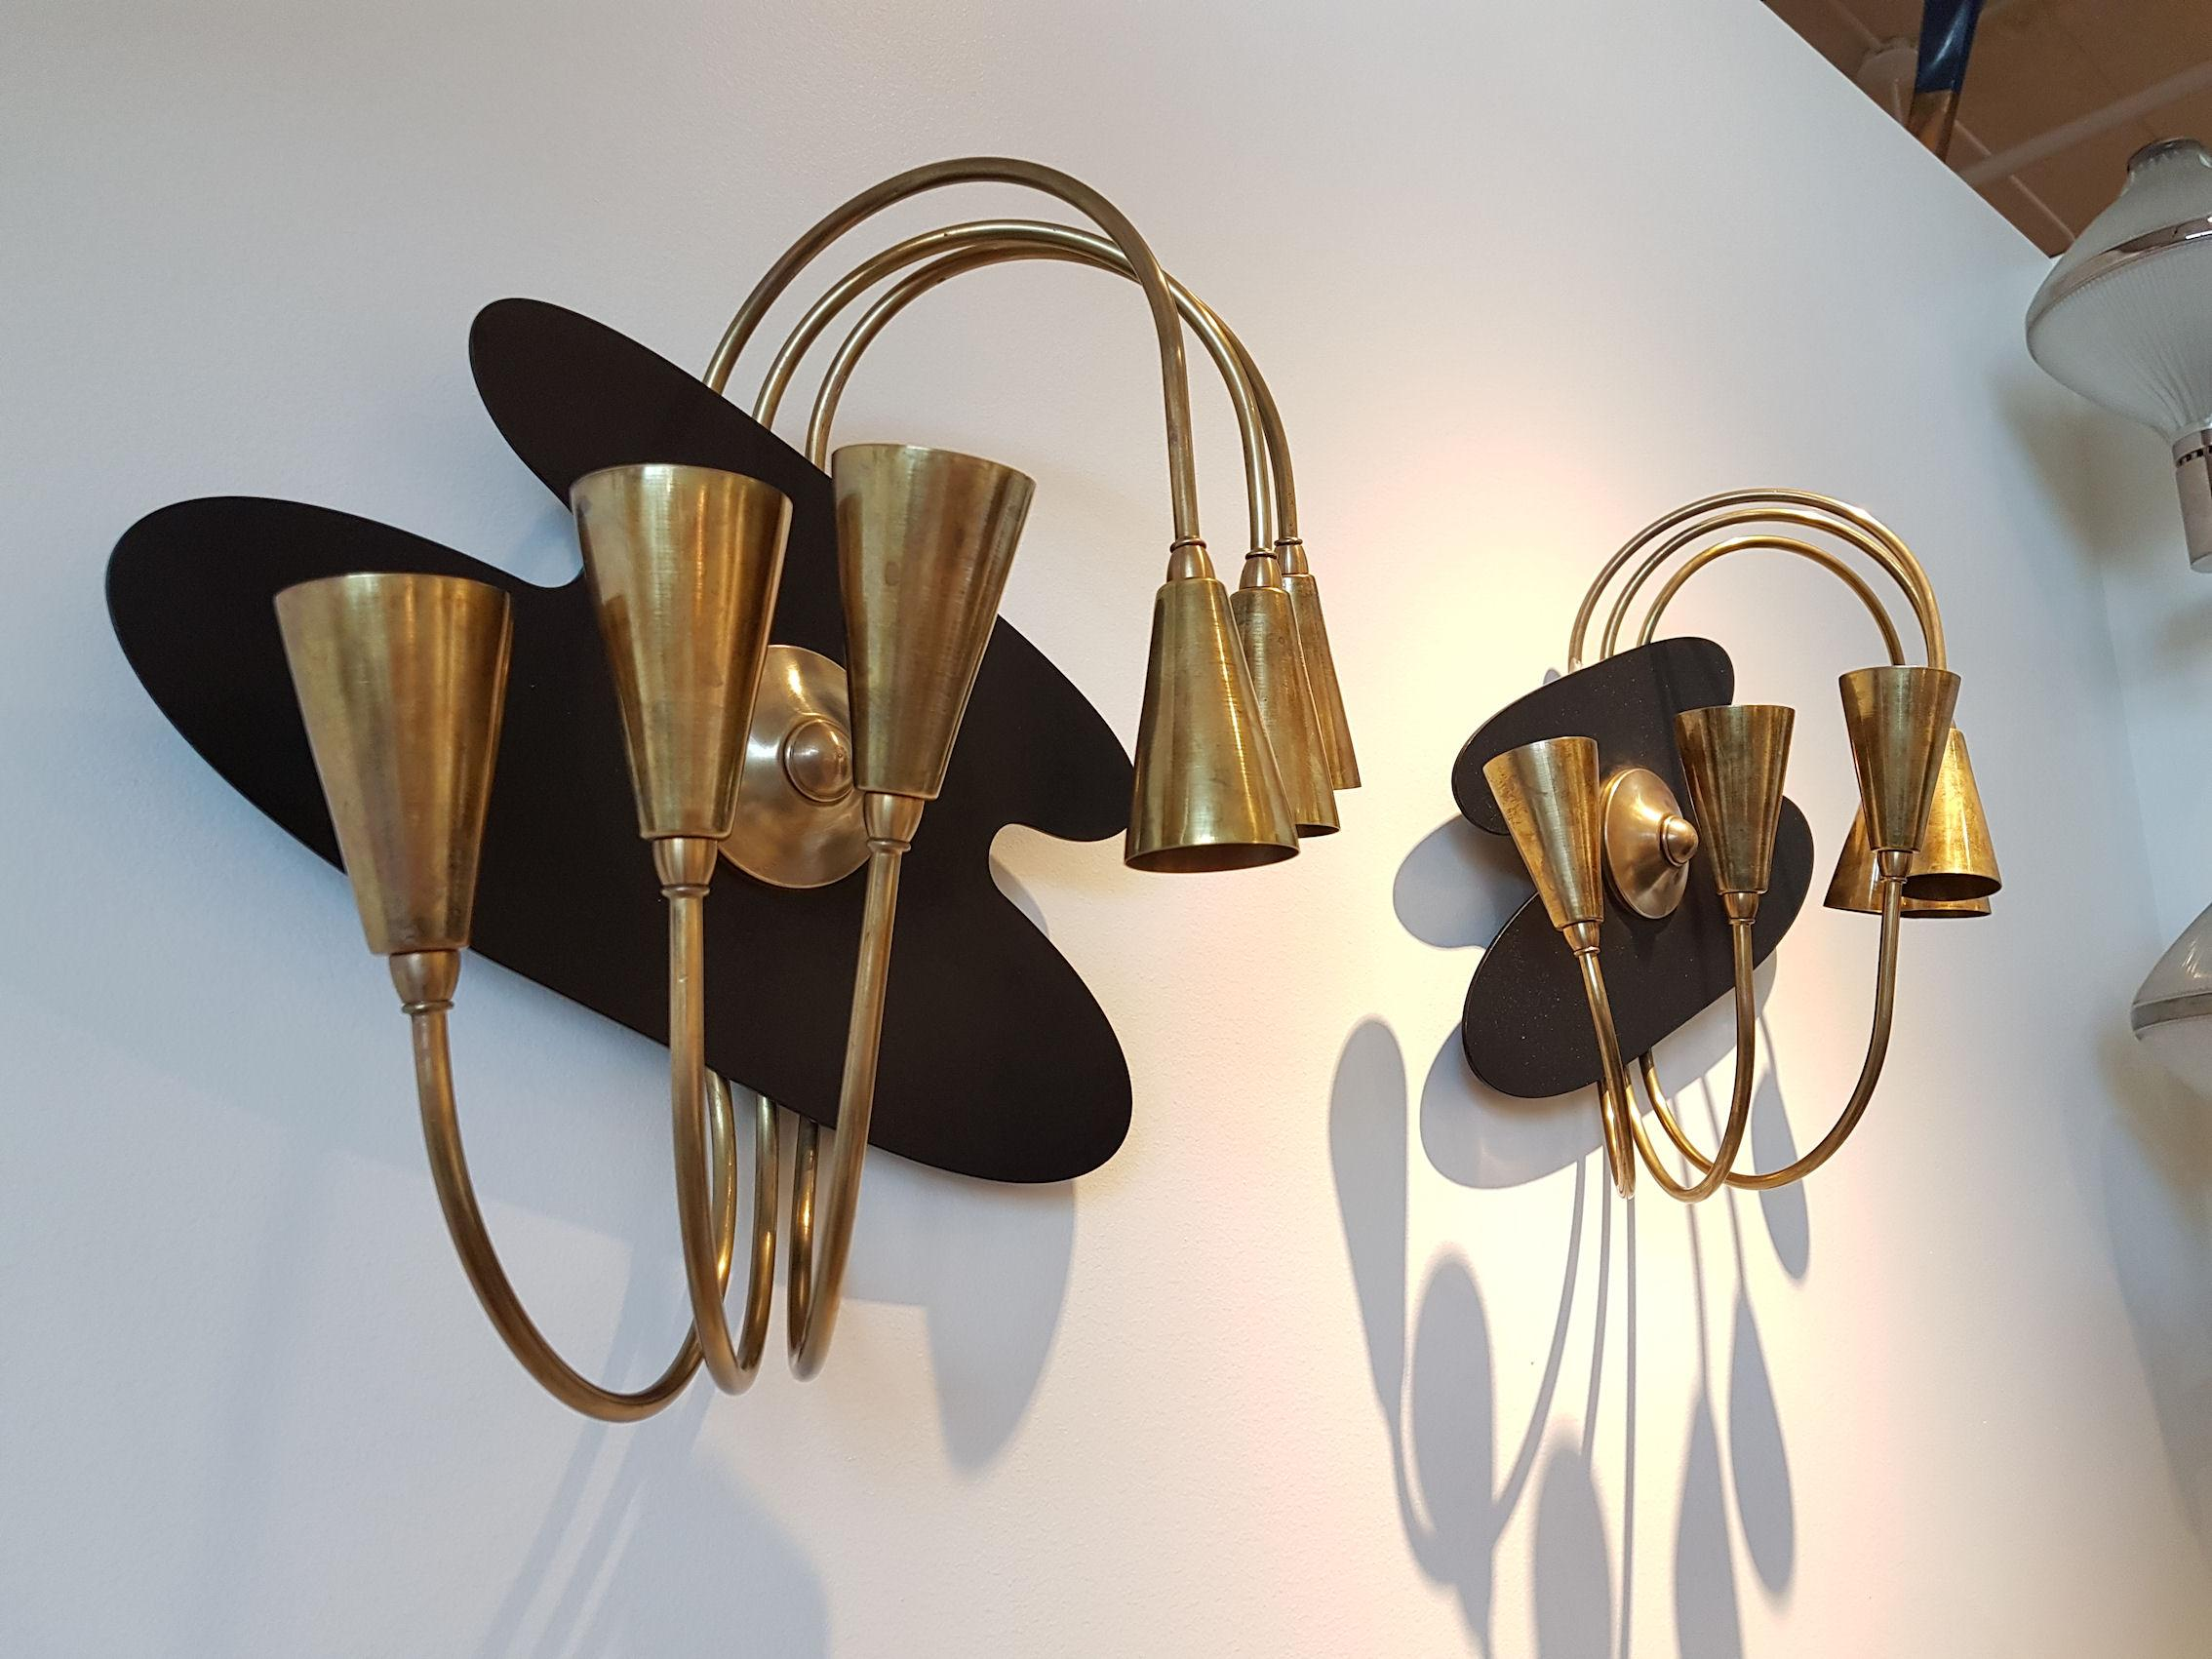 Pair of Large Brass Mid-Century Modern Wall Sconces ... on Mid Century Modern Sconces id=94164